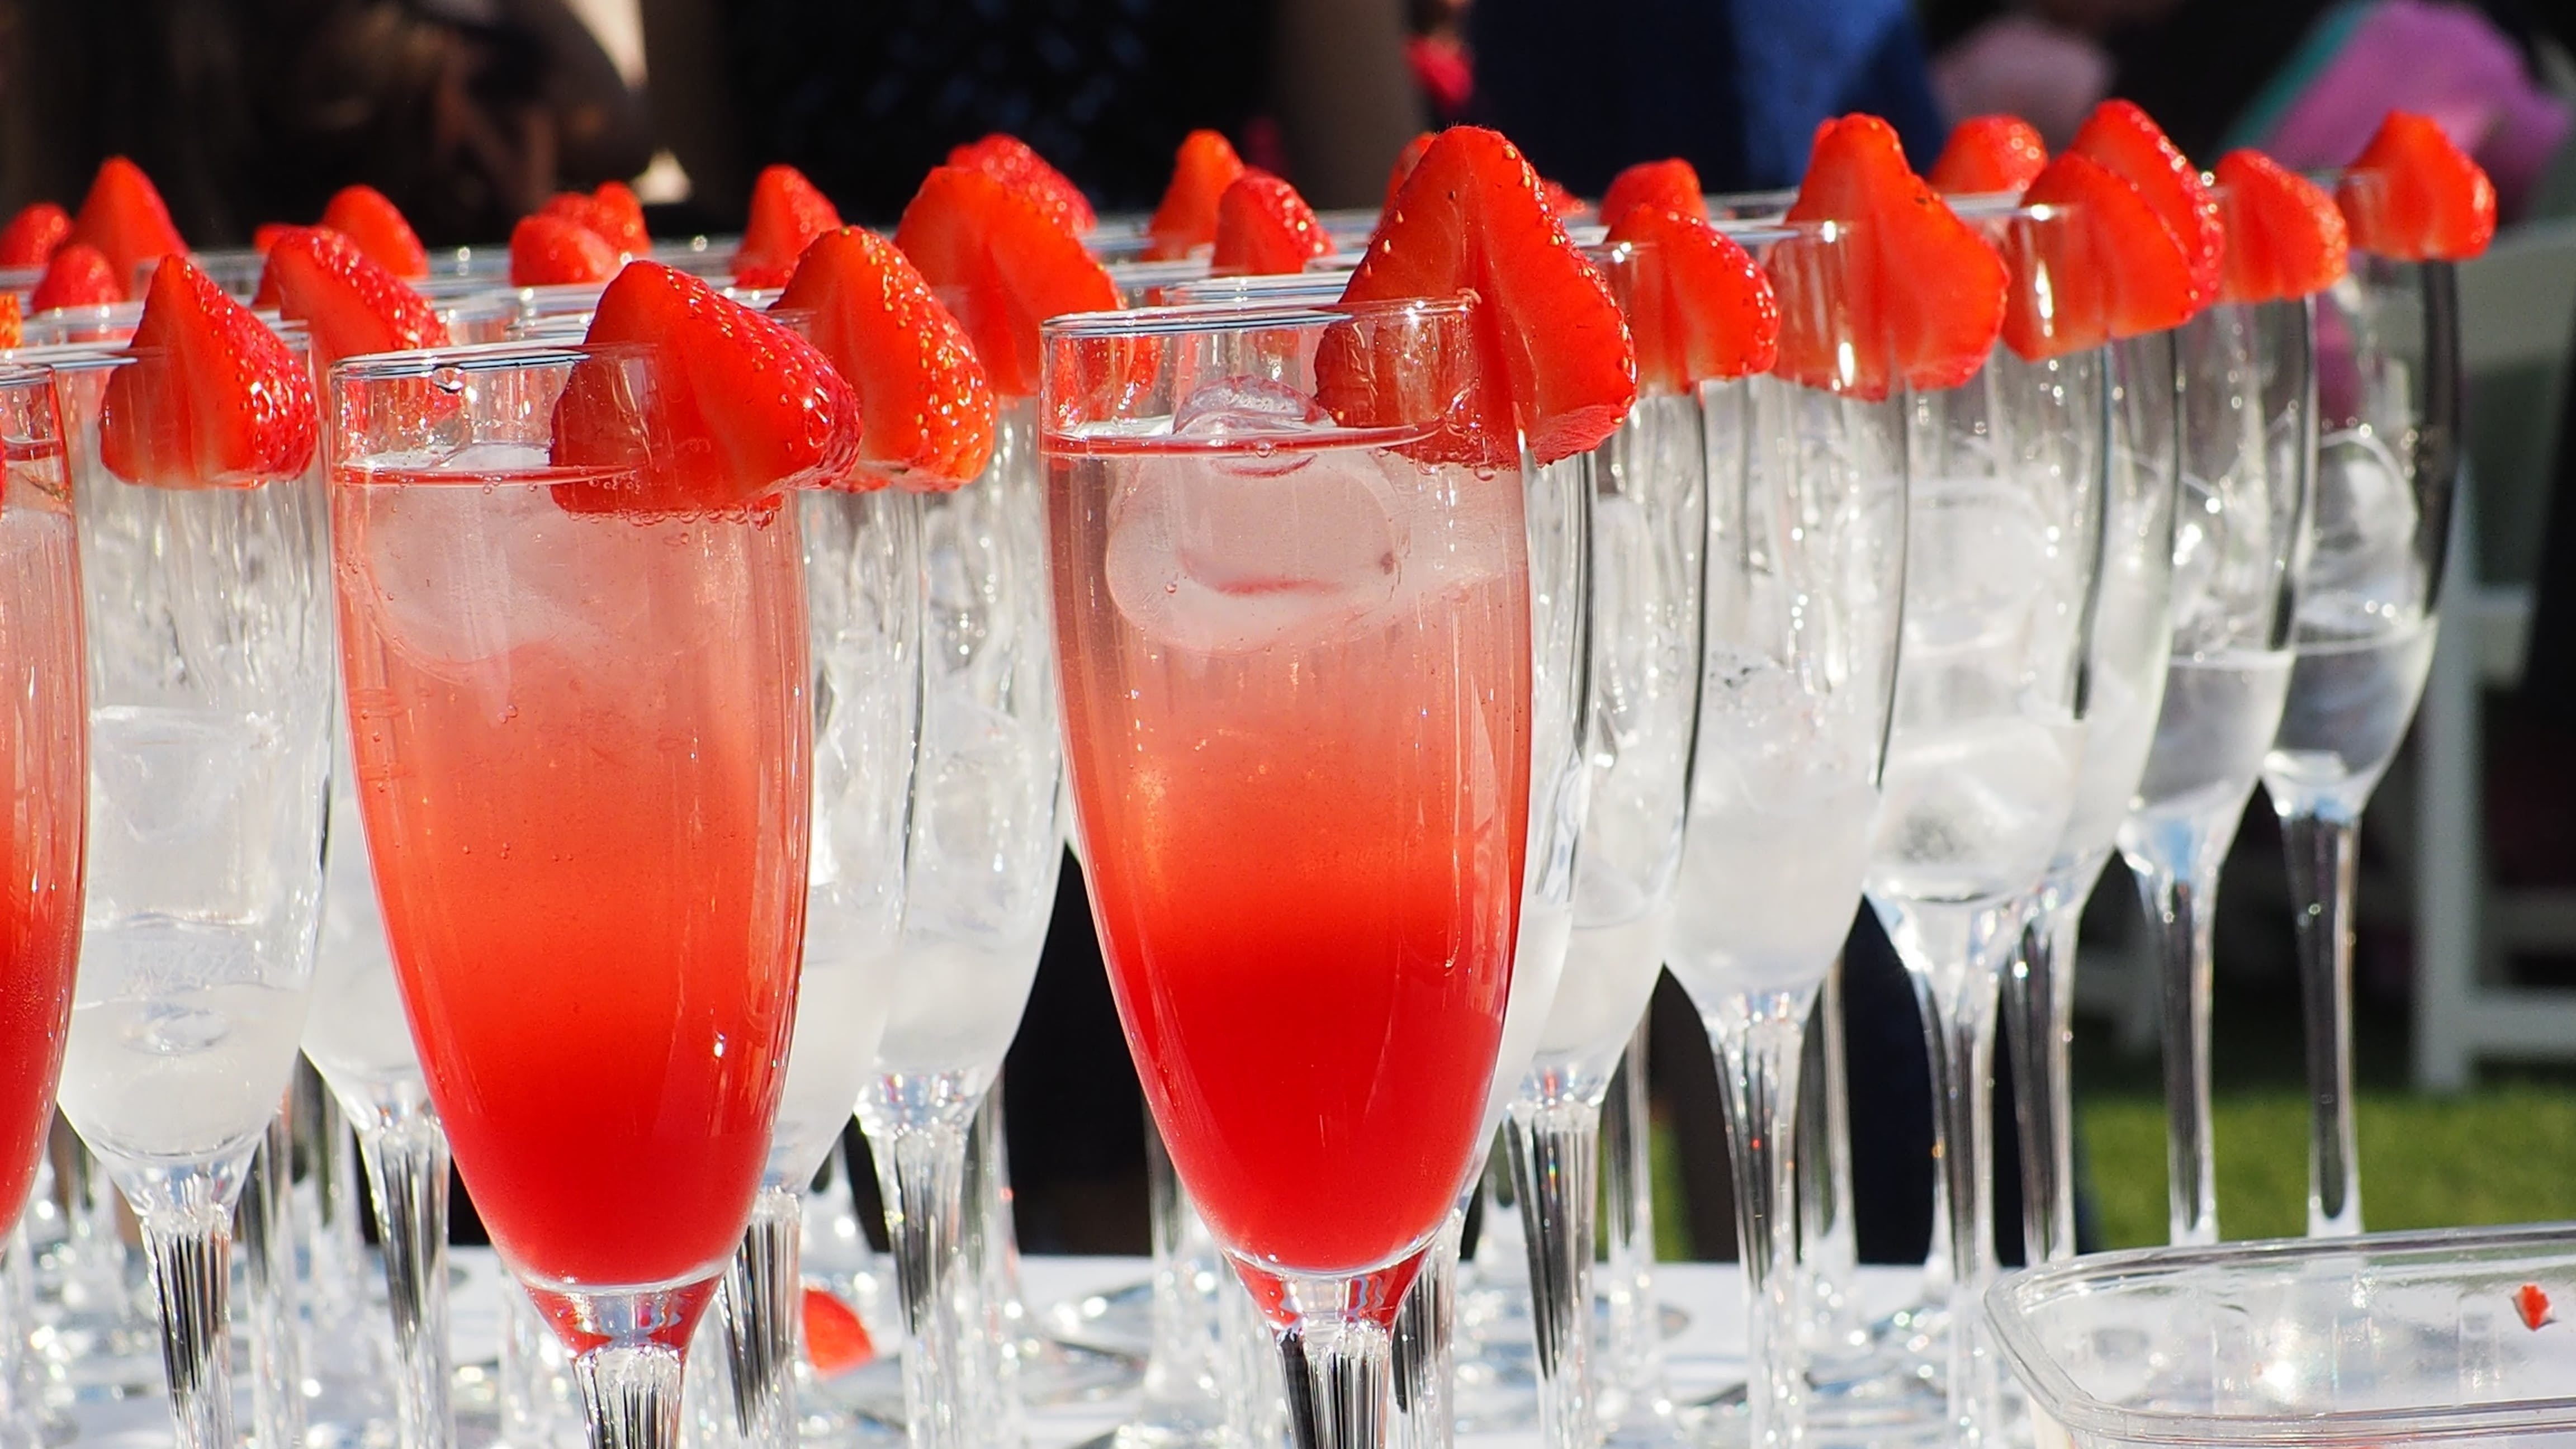 Free stock photo of beverage, beverages, catering, cocktail